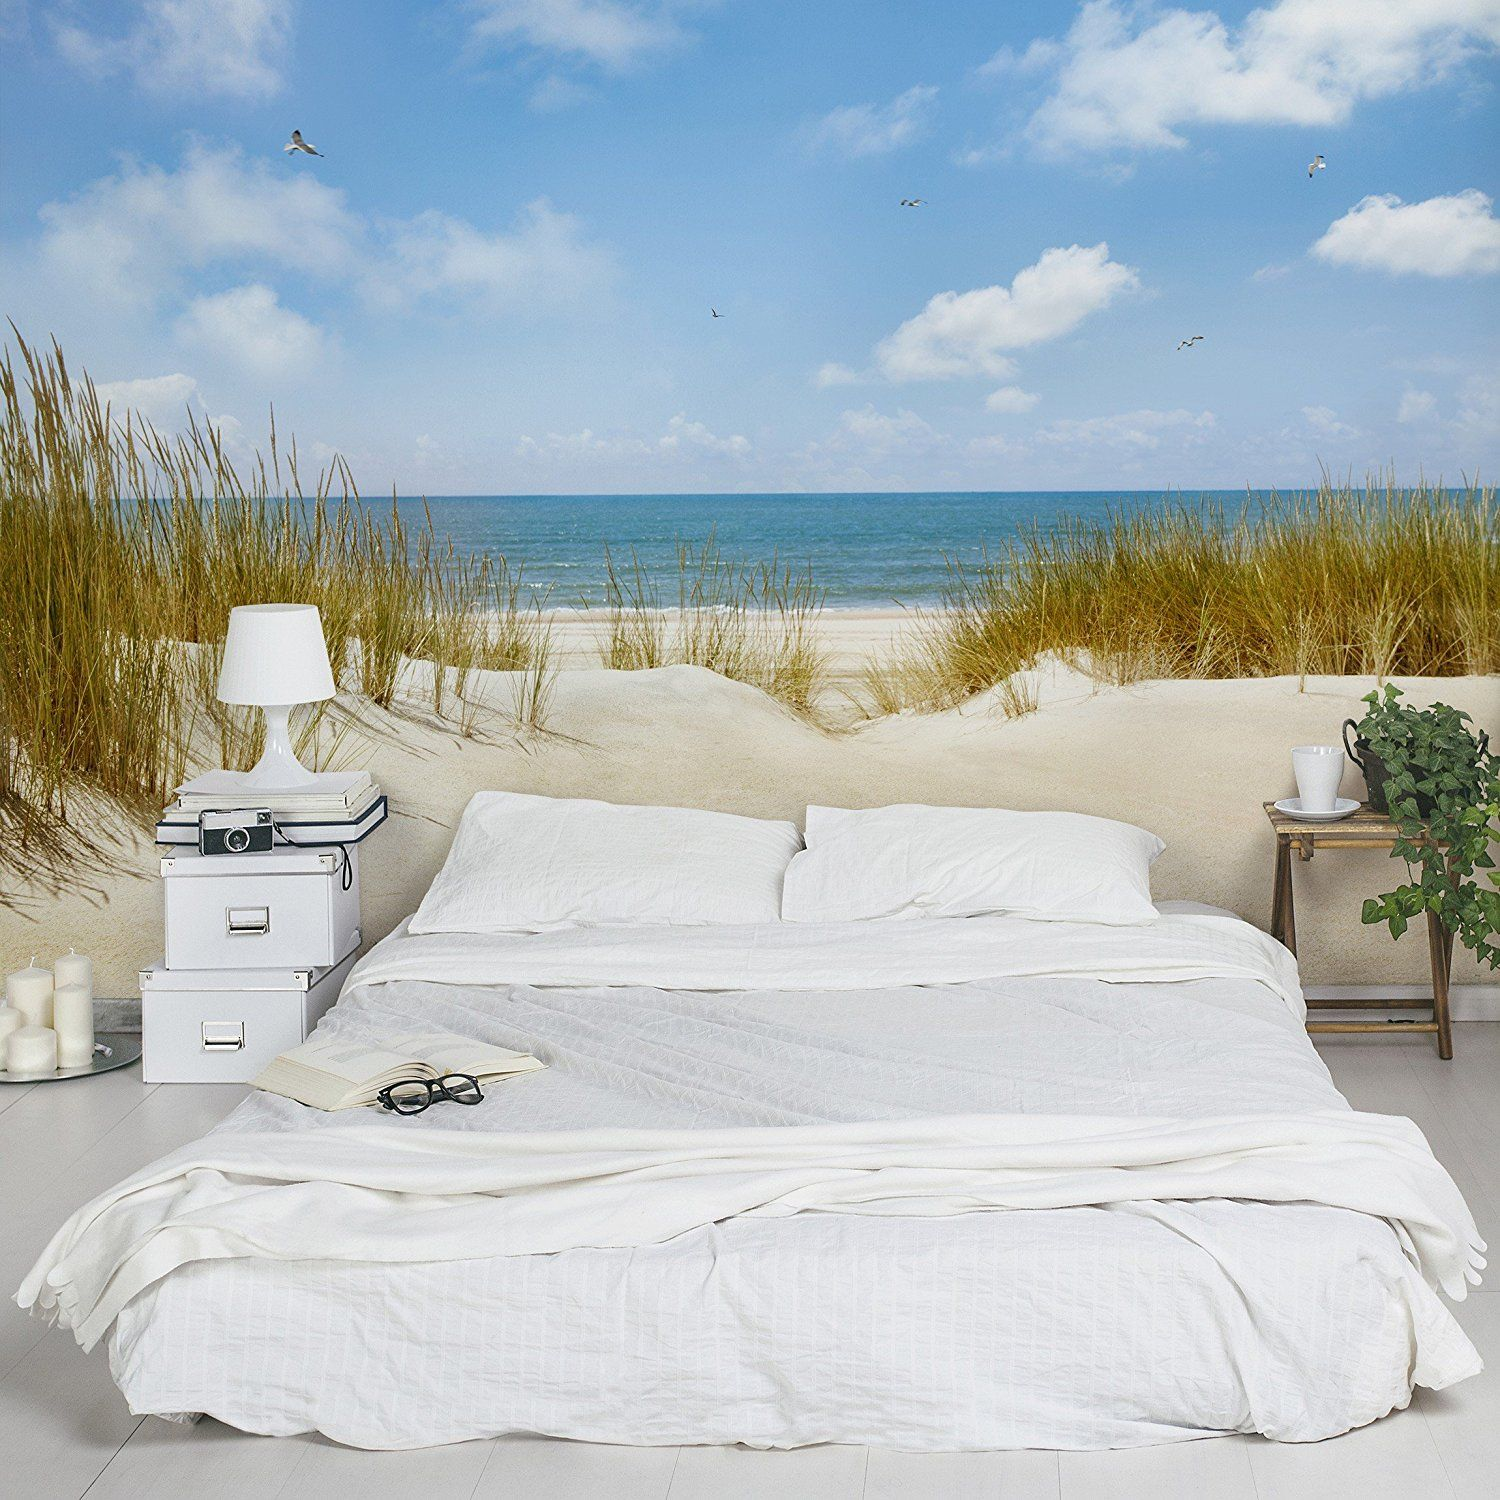 vlies fototapete strand an der nordsee das original. Black Bedroom Furniture Sets. Home Design Ideas